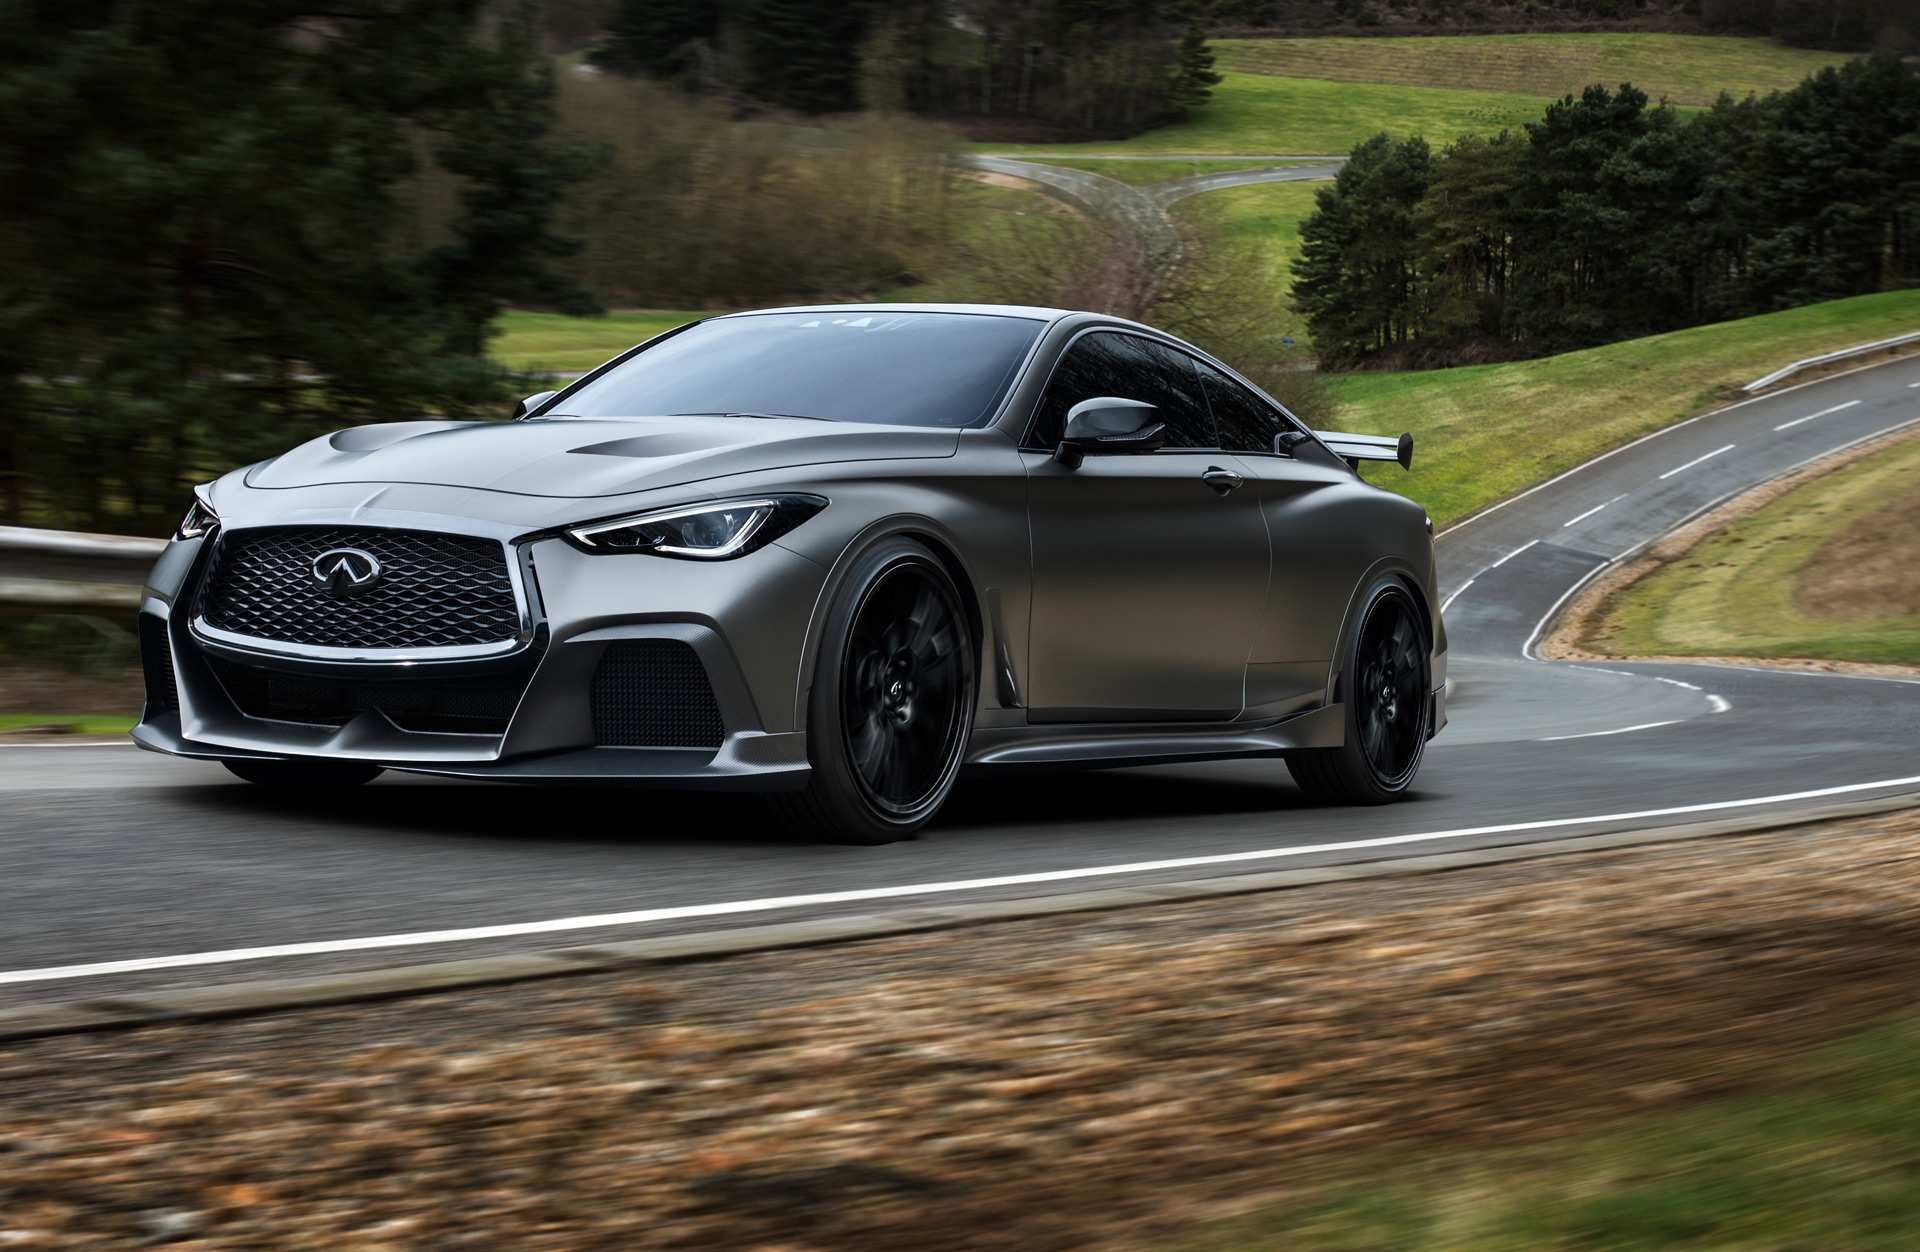 94 The 2020 Infiniti Q60 Coupe Style